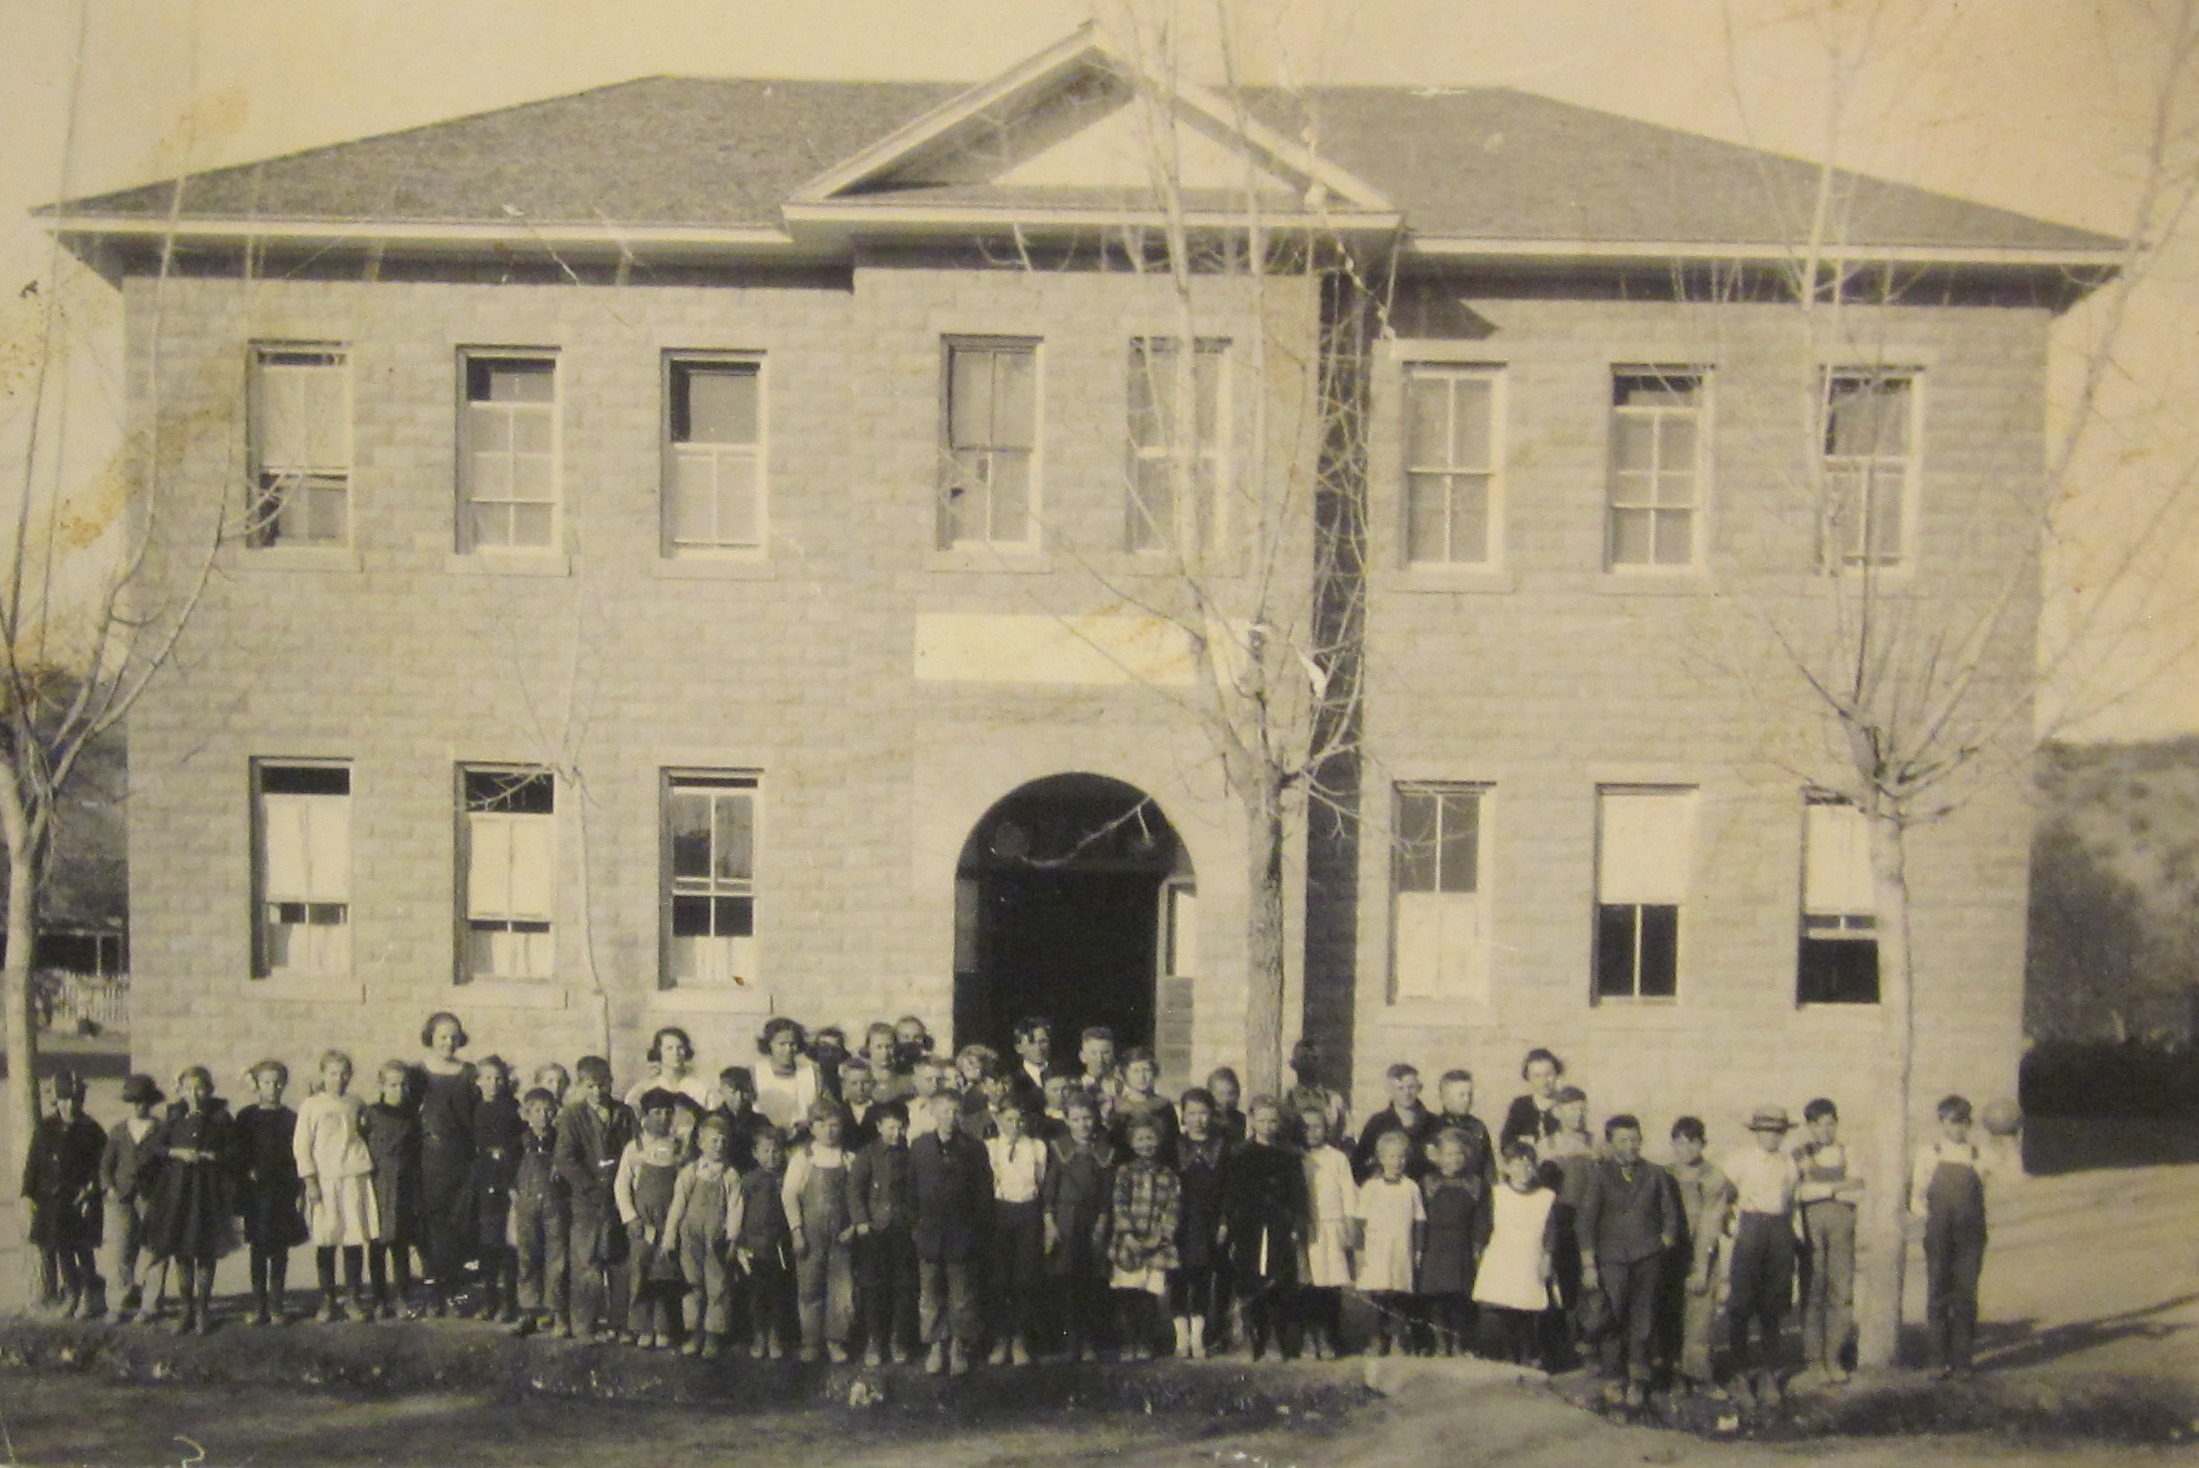 Old Santa Clara School with students out in front